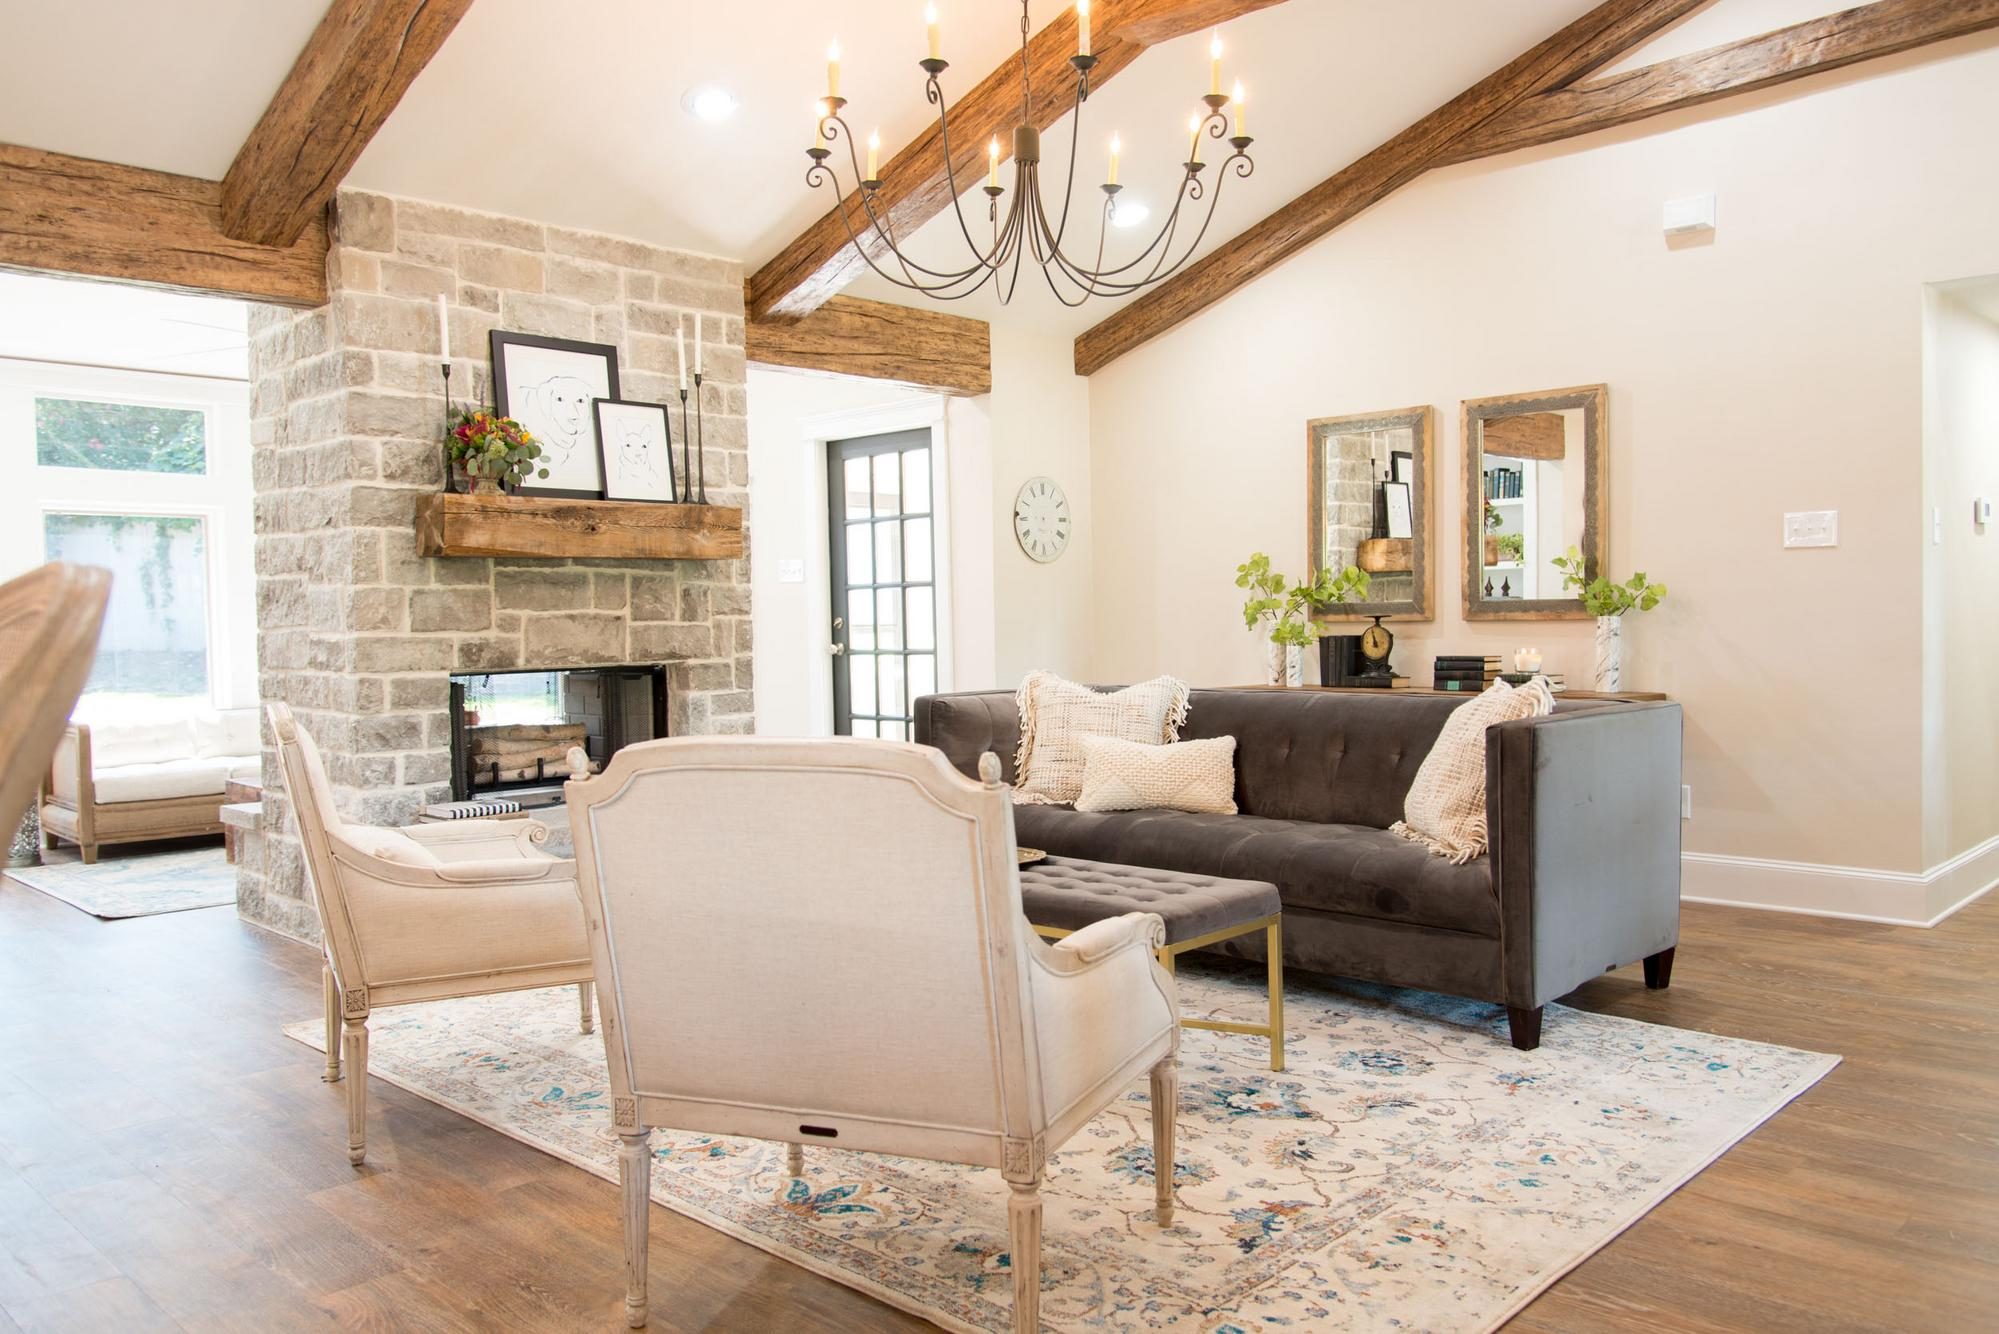 HGTV's Fixer Upper Beams Project | Old World Traditions